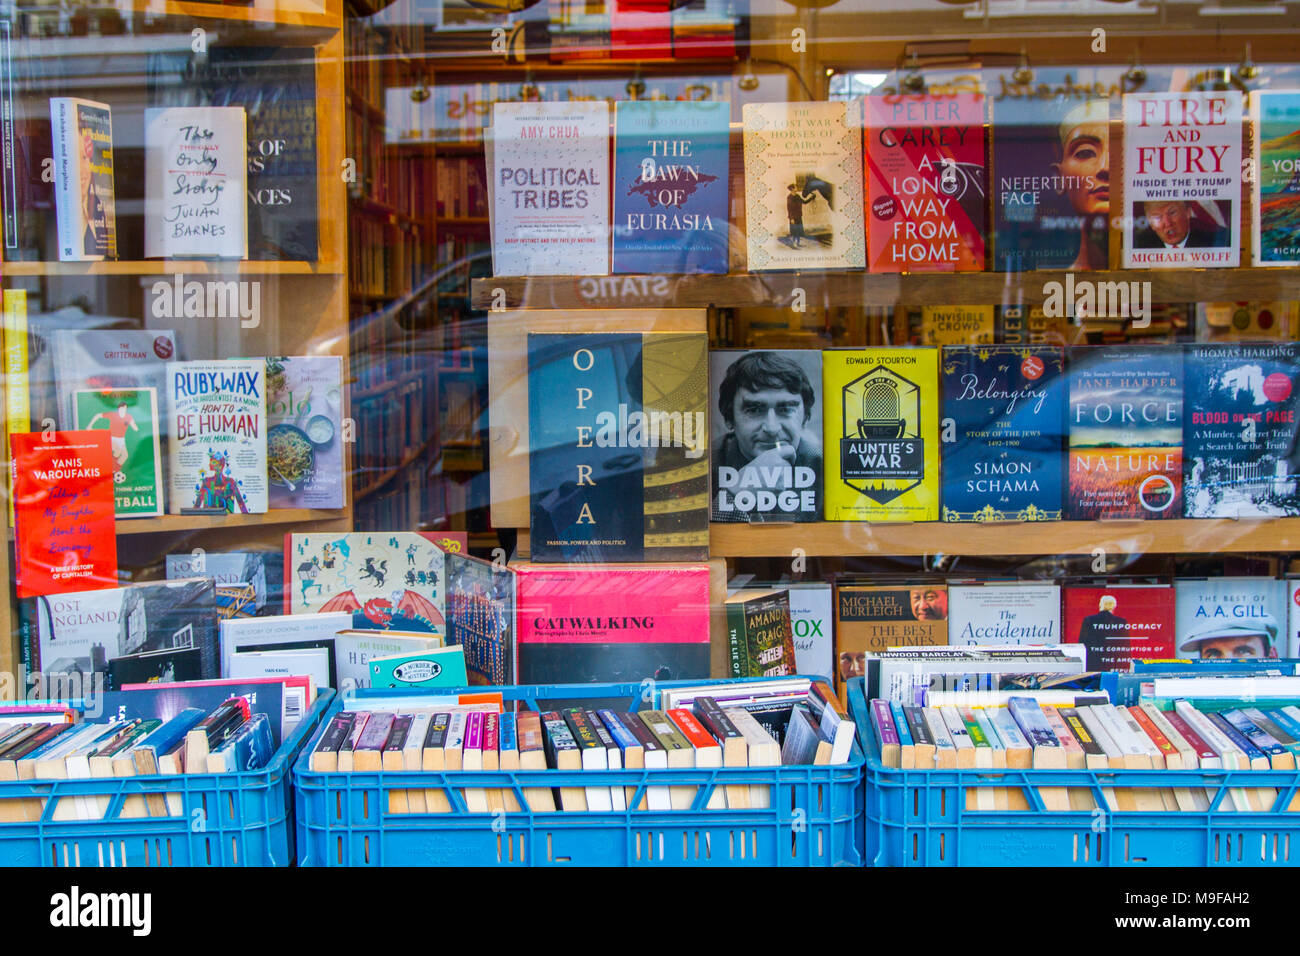 Primrose Hill Books, Old fashioned bookshop, bookstore book shop with crates of secondhand books outside stacked, London UK window book display learn - Stock Image